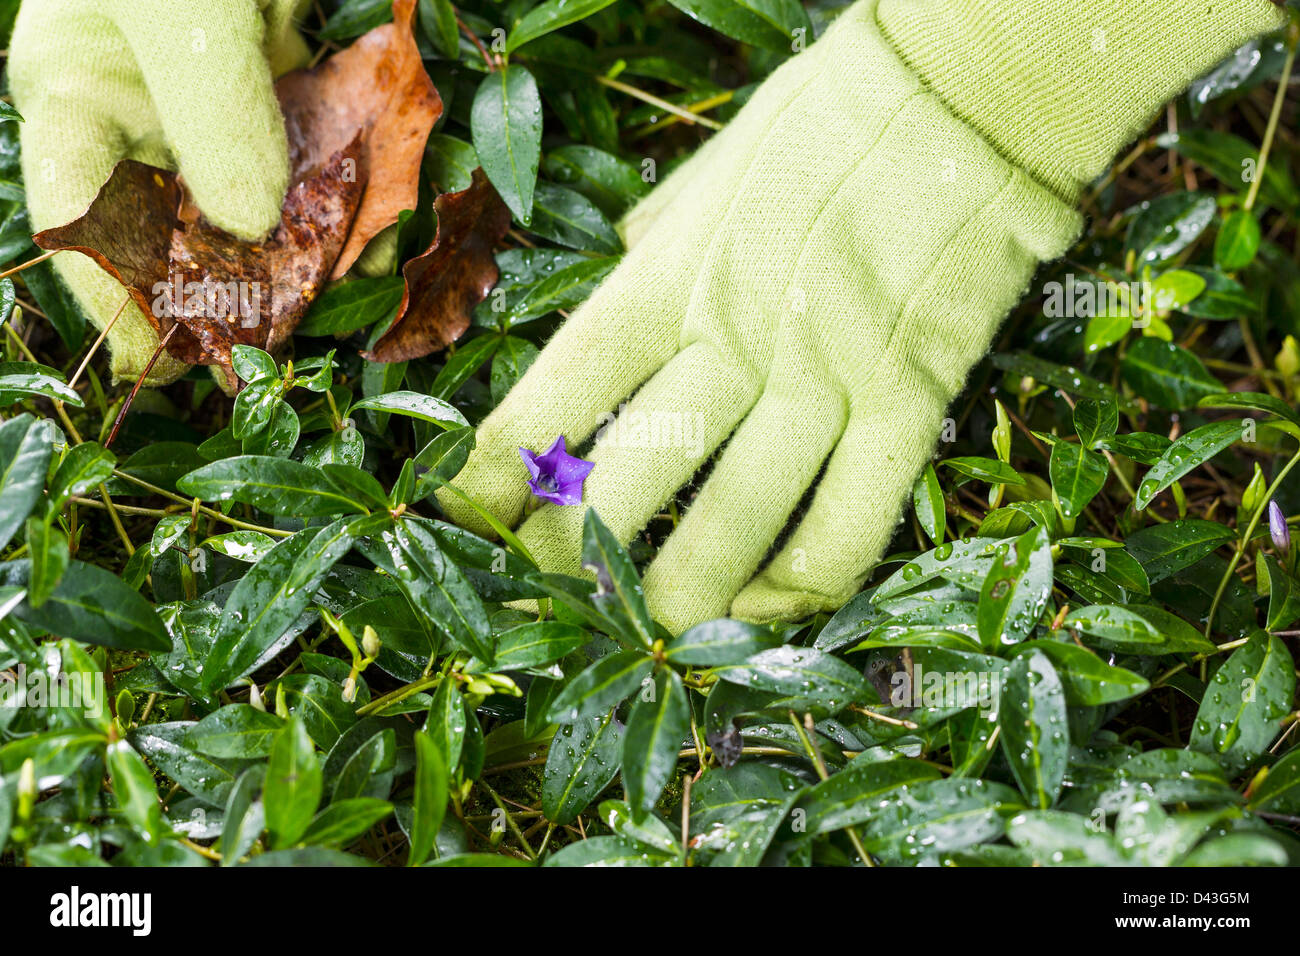 Horizontal photo of gloved hands cleaning flower bed with old leaves in hand - Stock Image